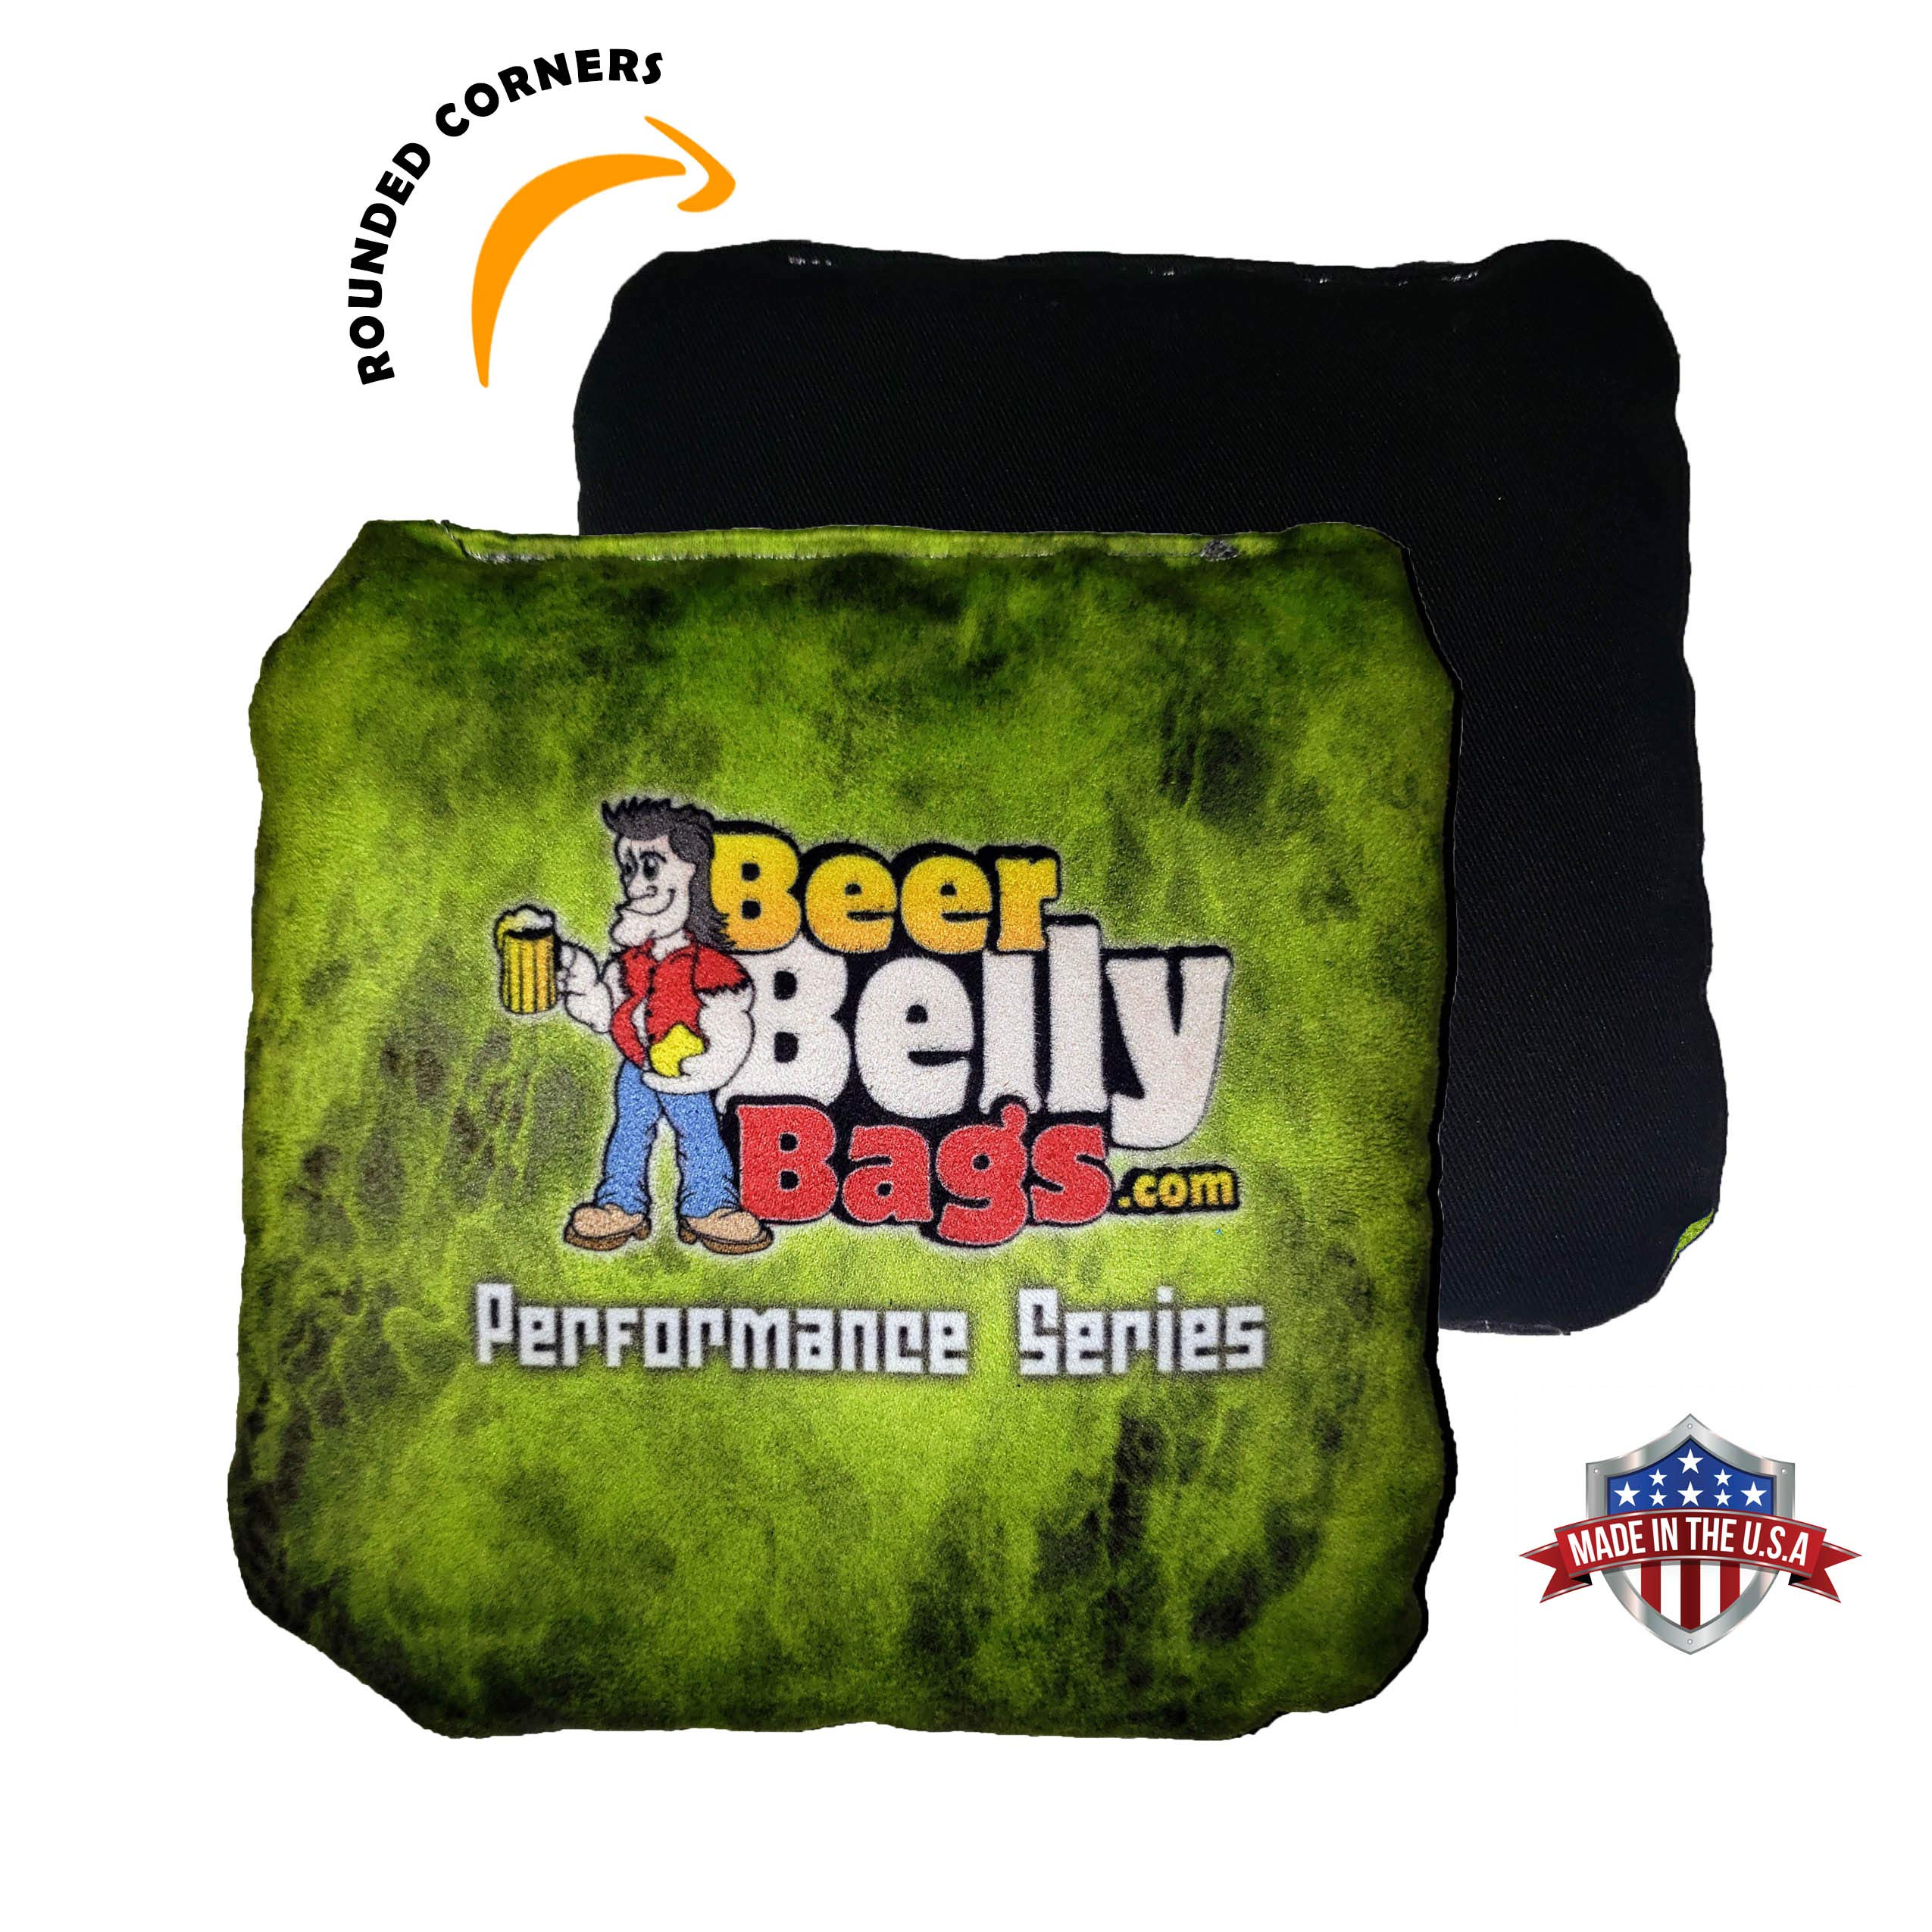 Beer Belly Bags Cornhole - Performance Series 4/pcs ACL Approved Resin Filled - Double Sided - Sticky/Slide Sides (Lime Fire) by Beer Belly Bags